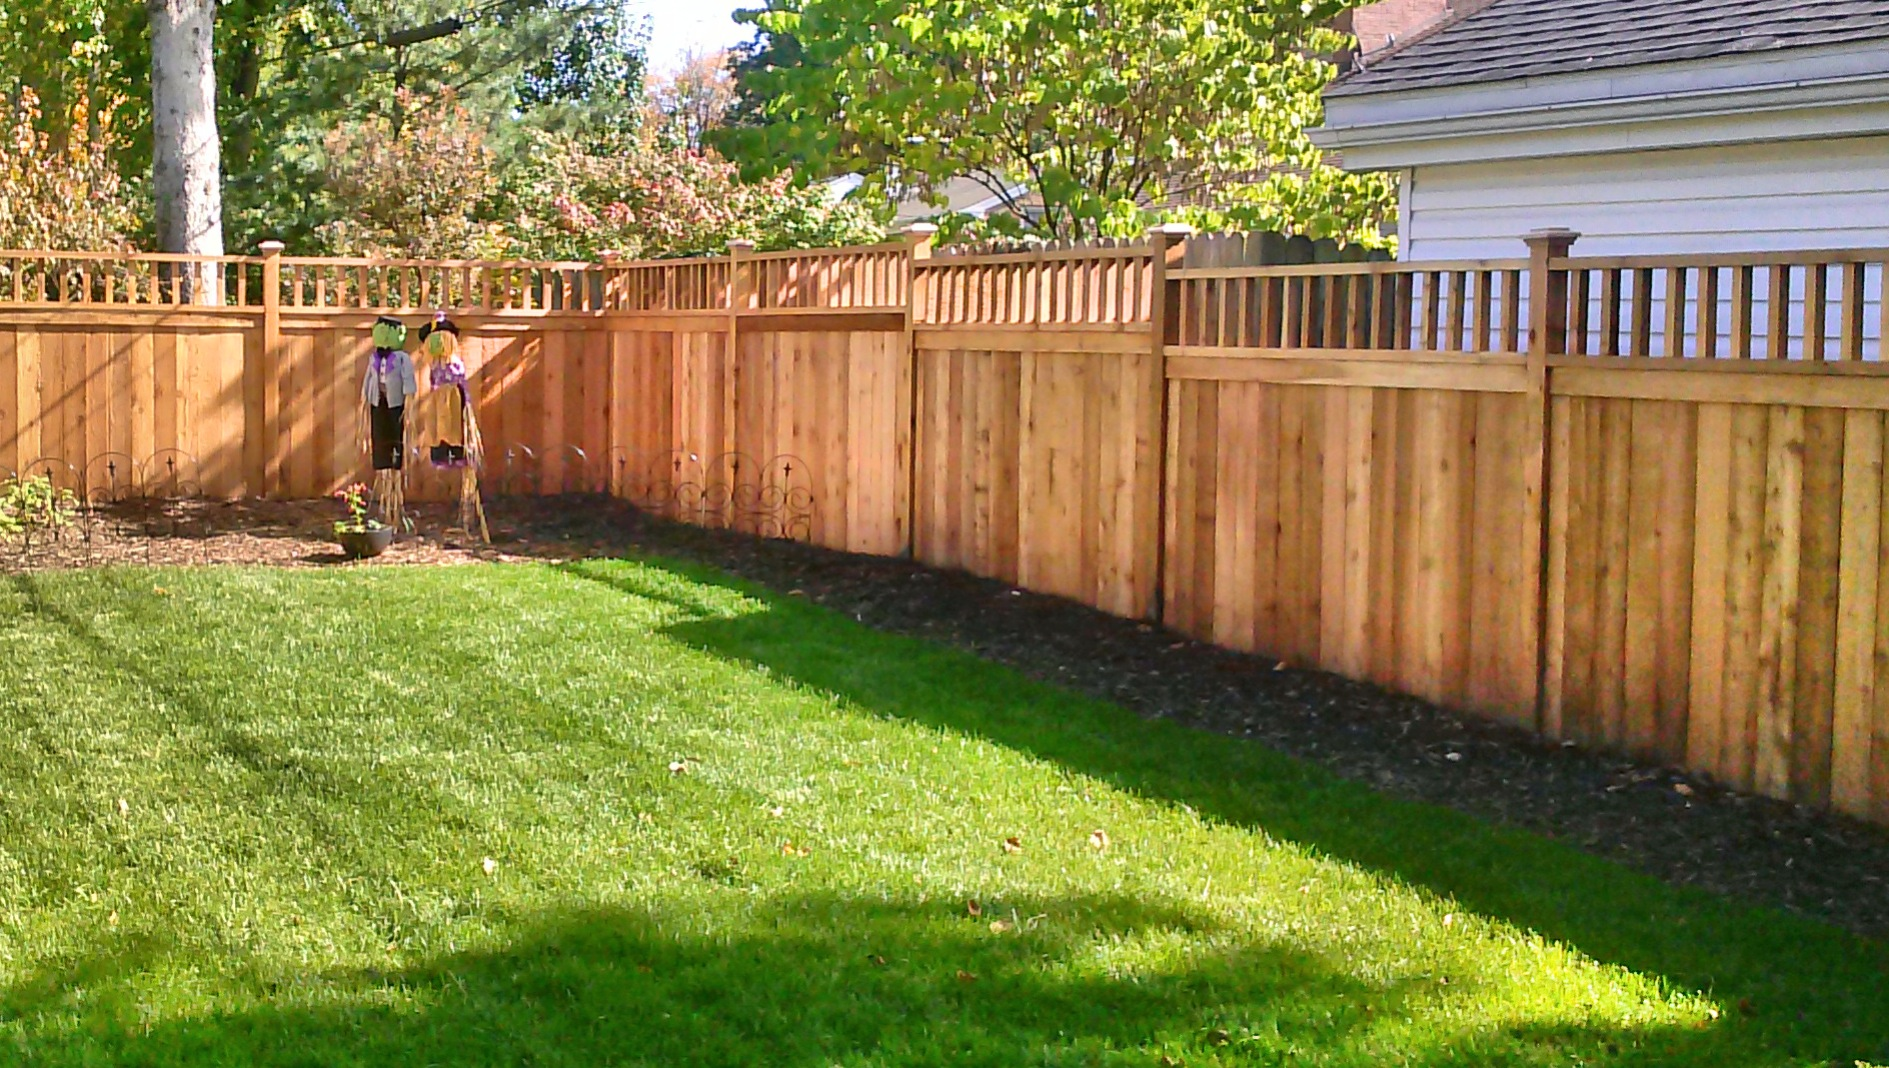 Good fences make good neighbors straight line fence for Fences privacy